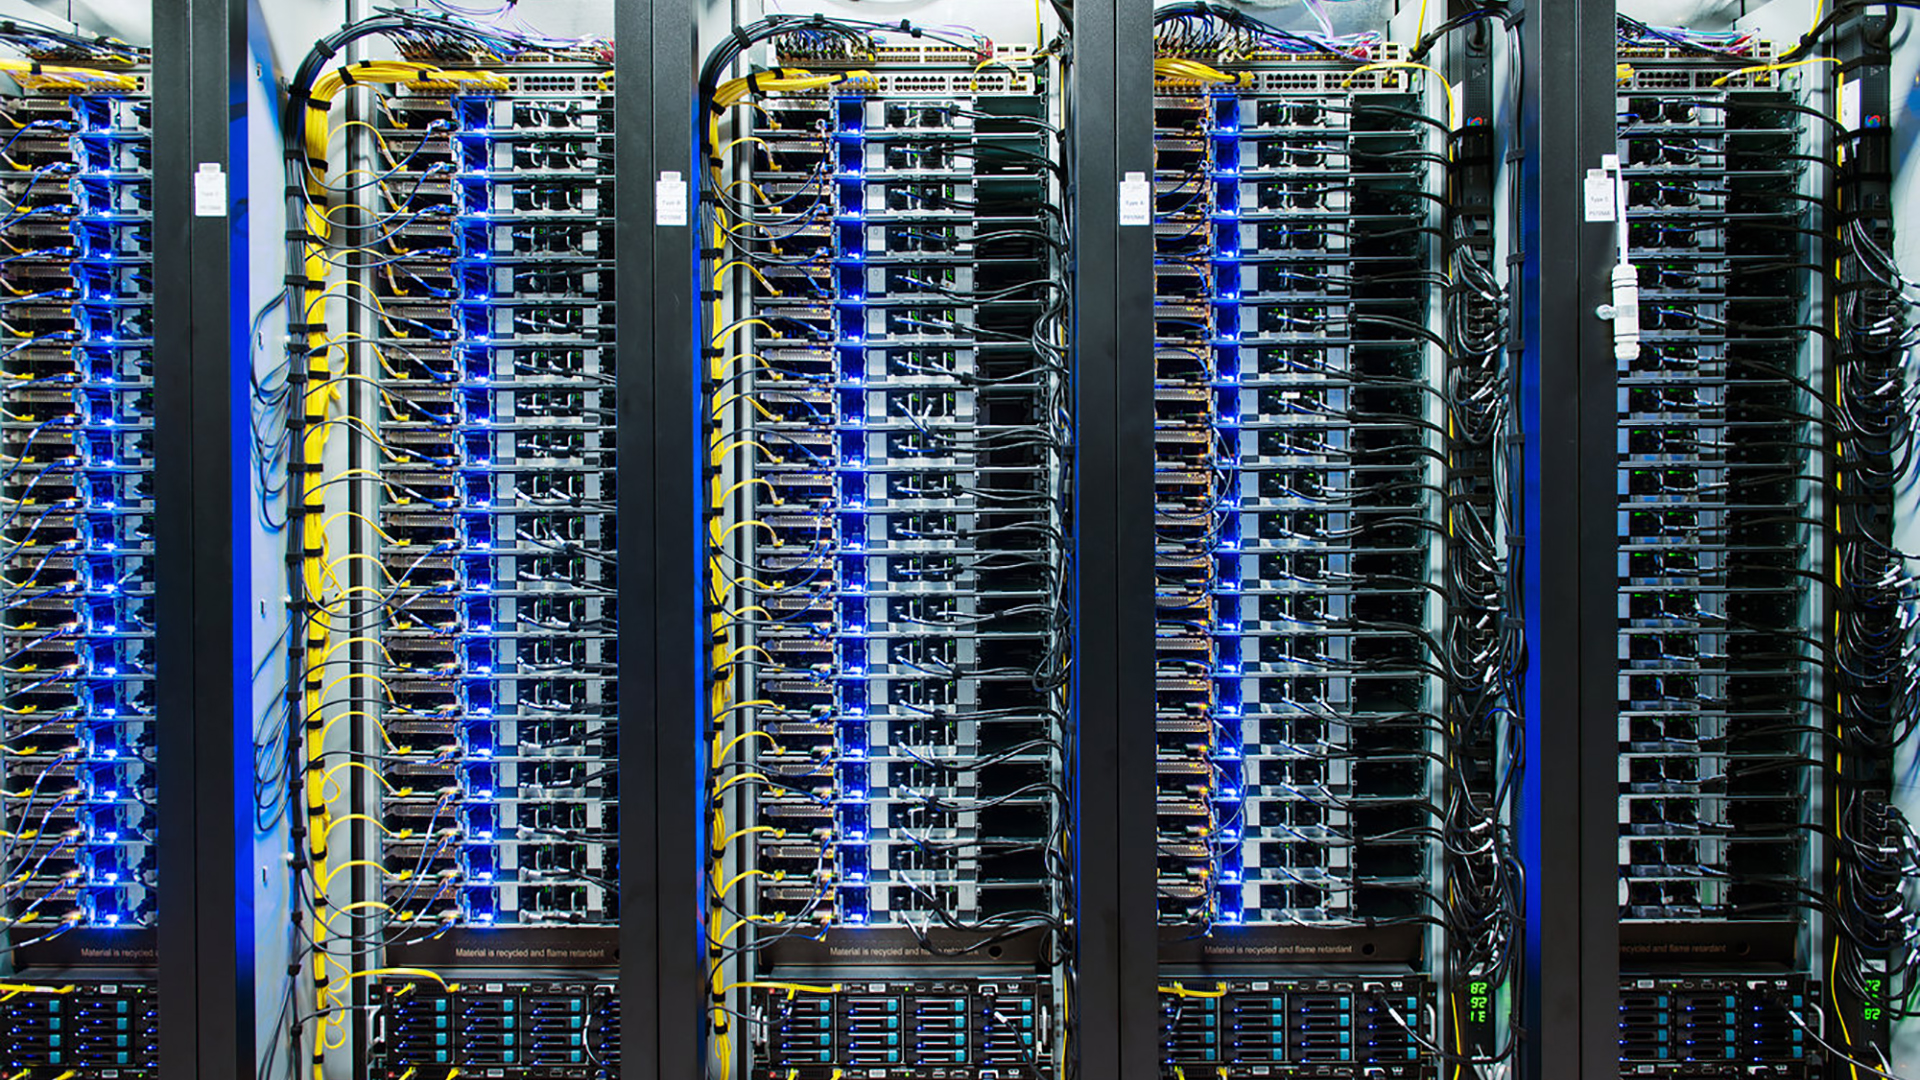 Server racks at the Facebook Data Center. Virtual background to use on Zoom, Microsoft Teams, Skype, Google Meet, WebEx or any other compatible app.